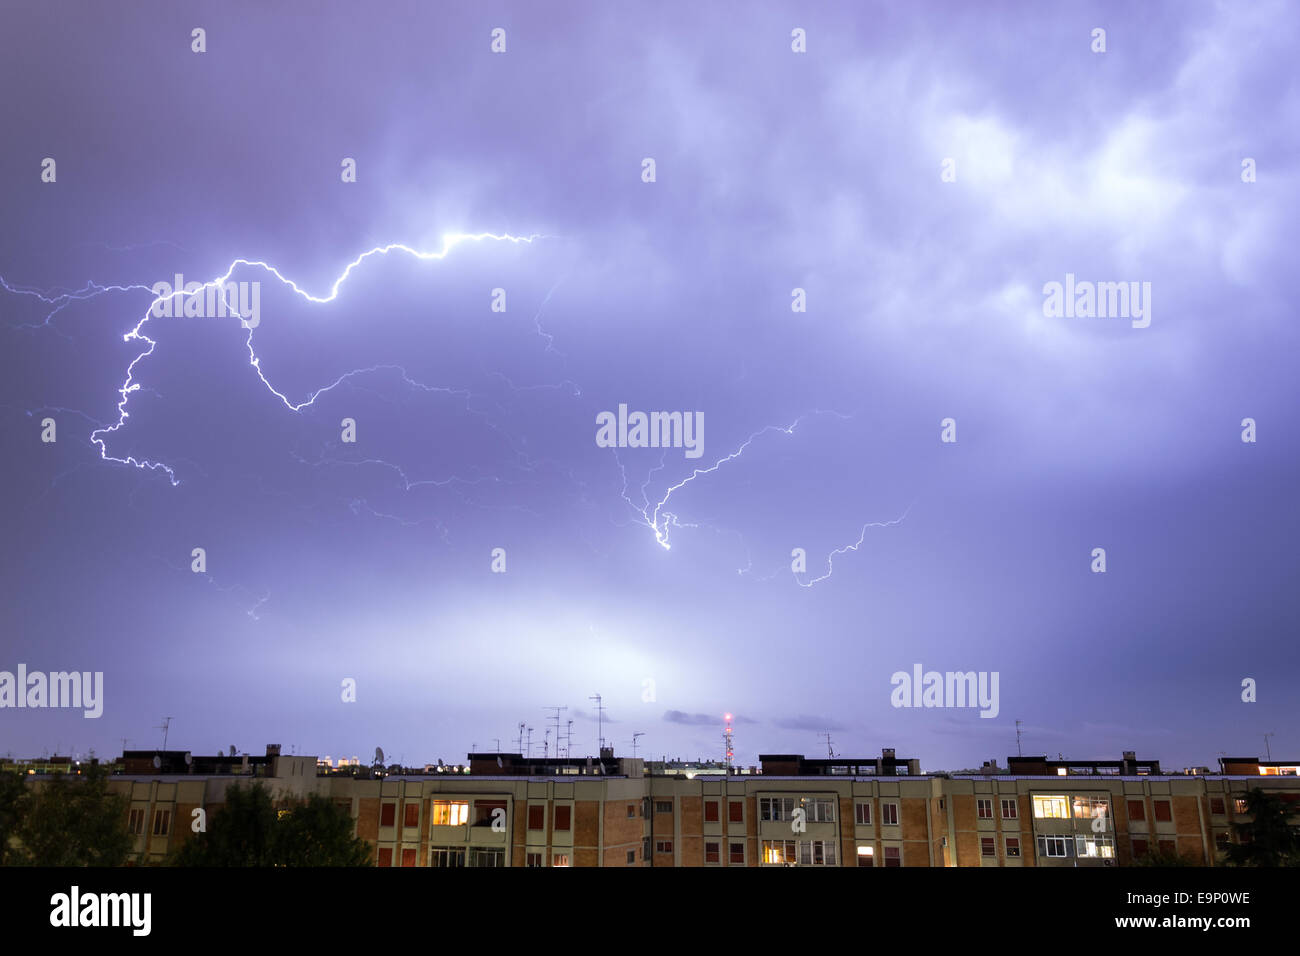 Storm with some lightning strike in the sky - Stock Image